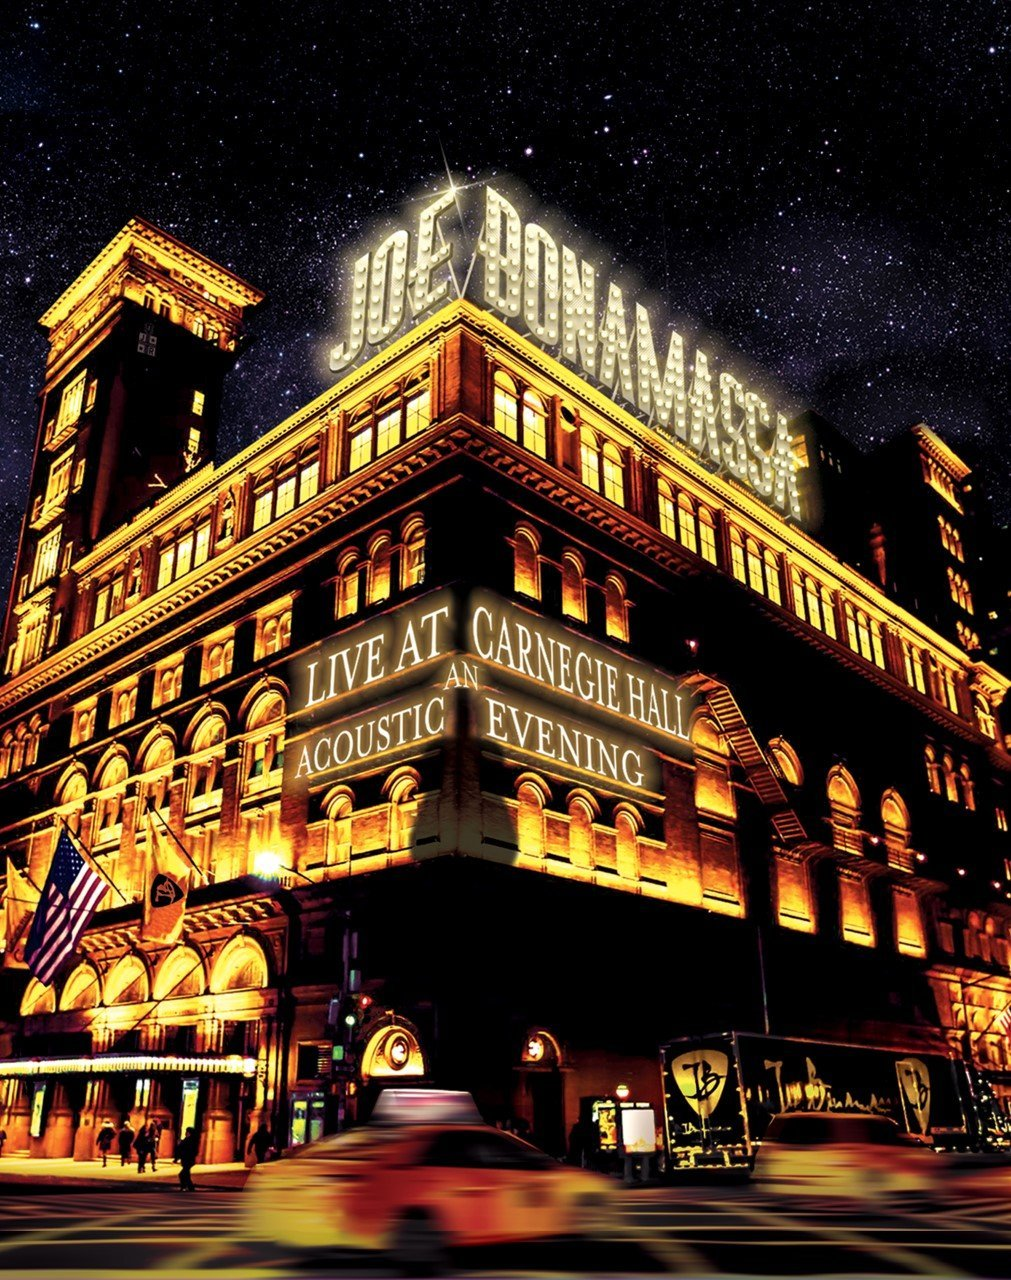 Joe Bonamassa - Live At Carnegie Hall: An Acoustic Evening [Blu-ray]